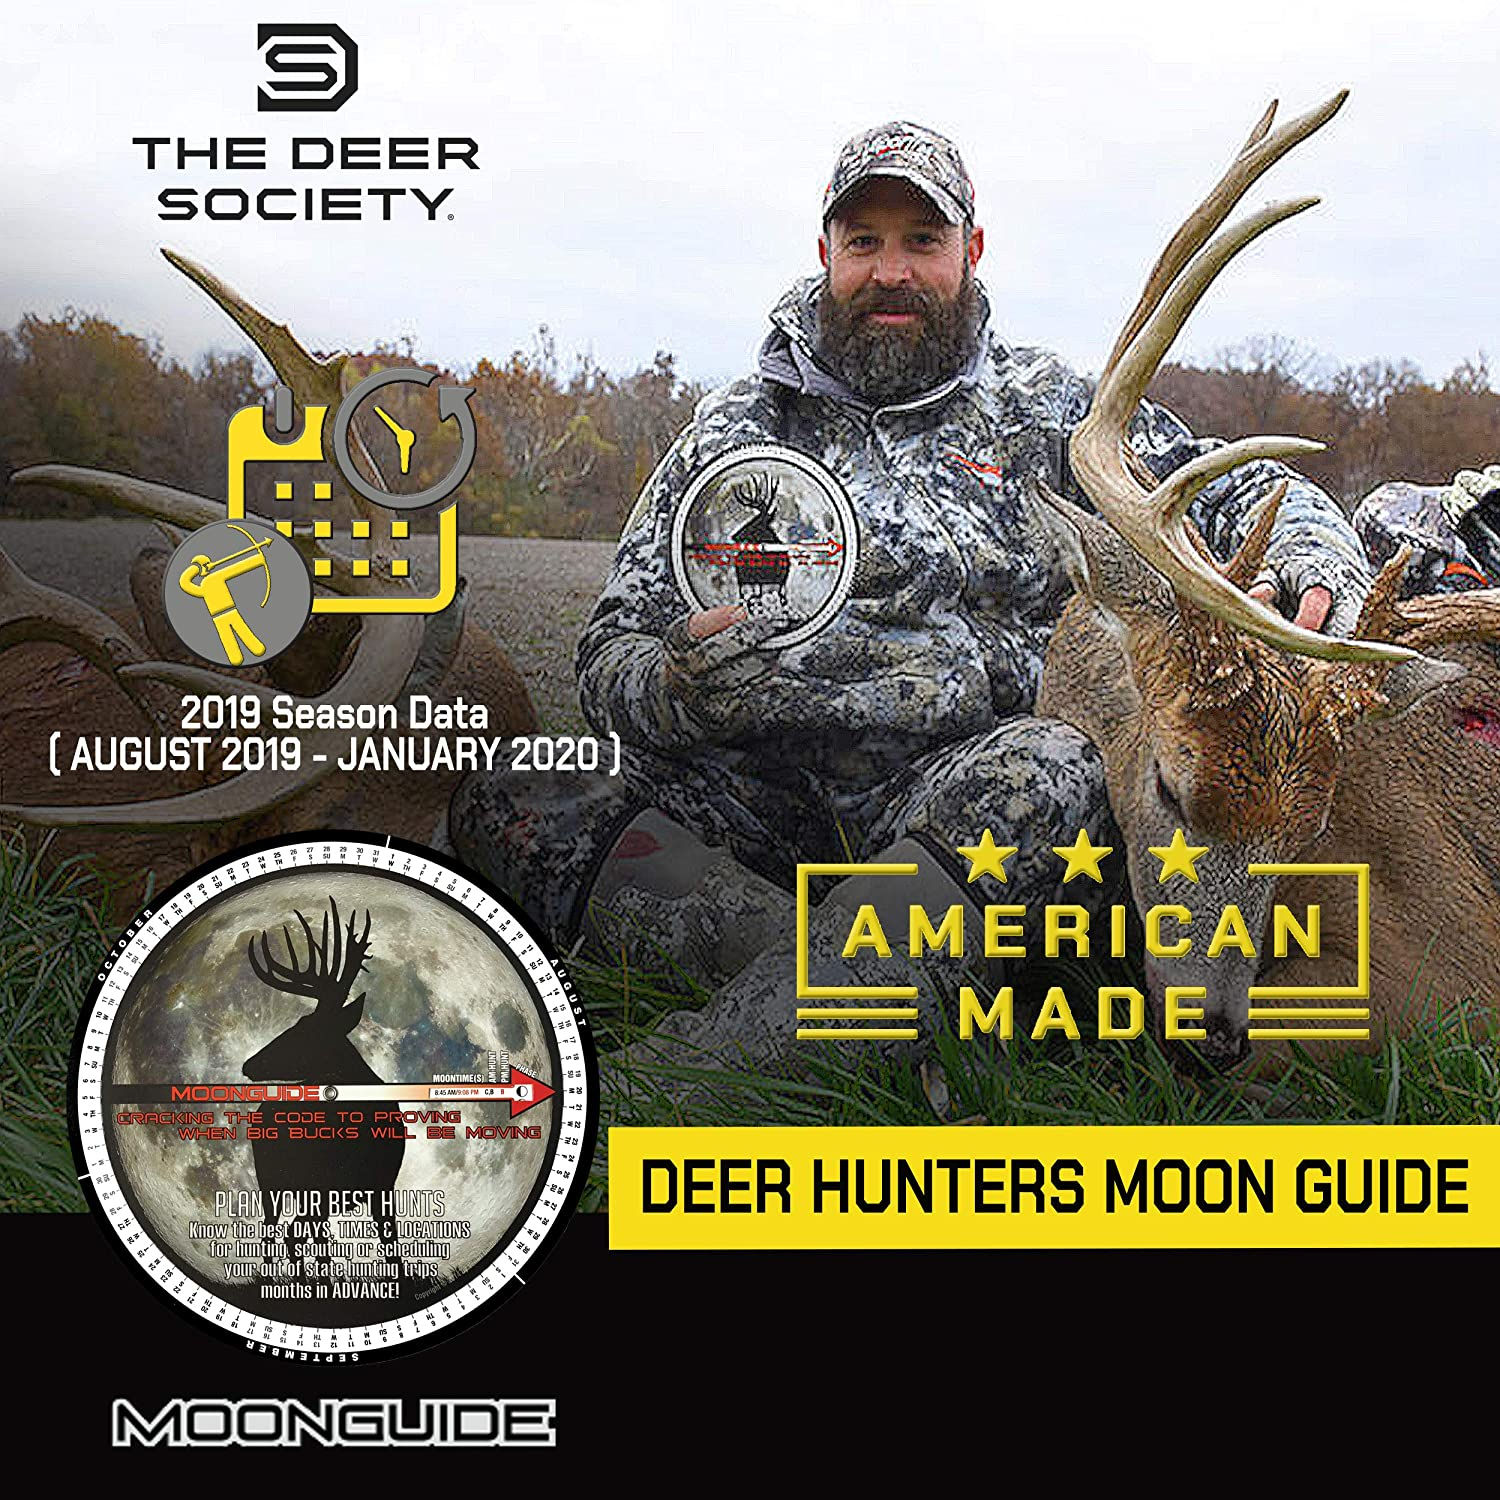 Best Time To Hunt Deer Moon Phase 2020 Amazon.: 2019 Moon Guide for Deer Hunting : Sports & Outdoors